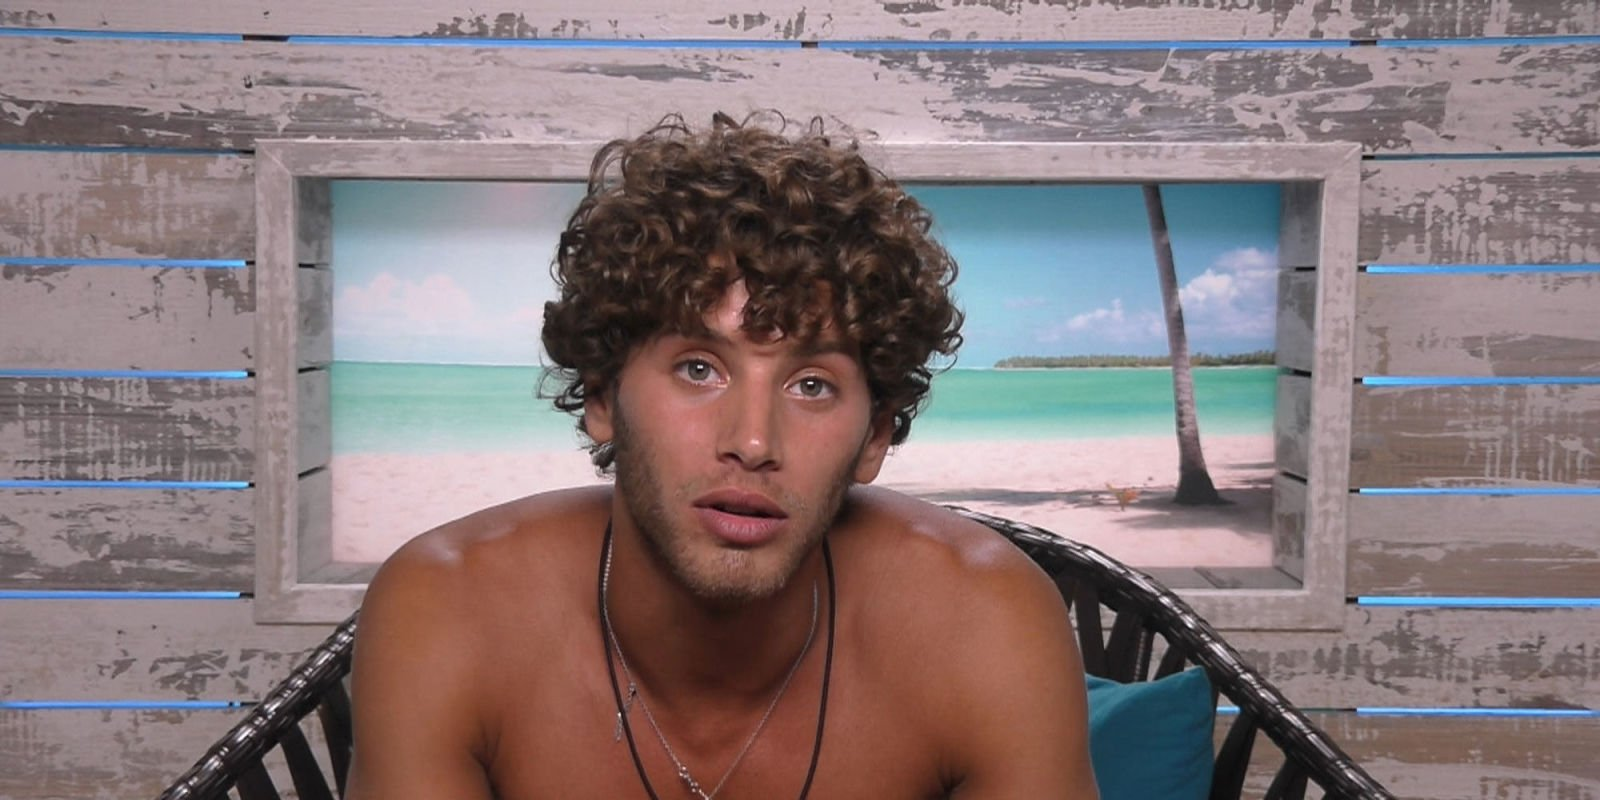 Eyal Booker previously dated Love Island star before entering the villa